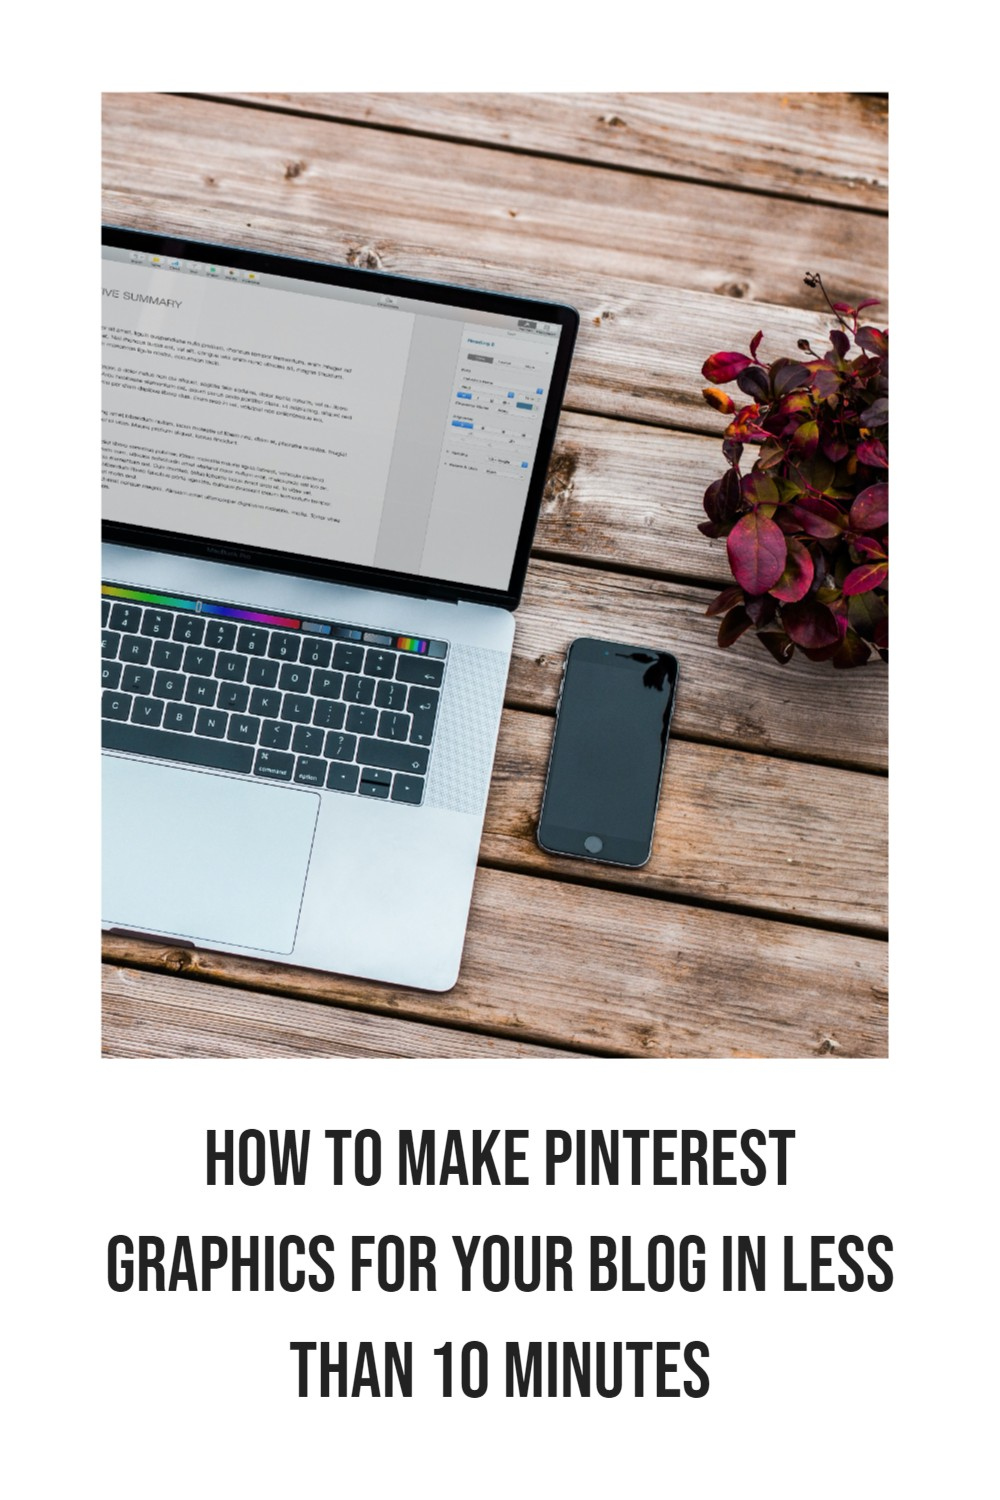 """Laptop and phone laying on table with text overlay """"How to make Pinterest Graphics for your blog in less than 10 minutes"""""""